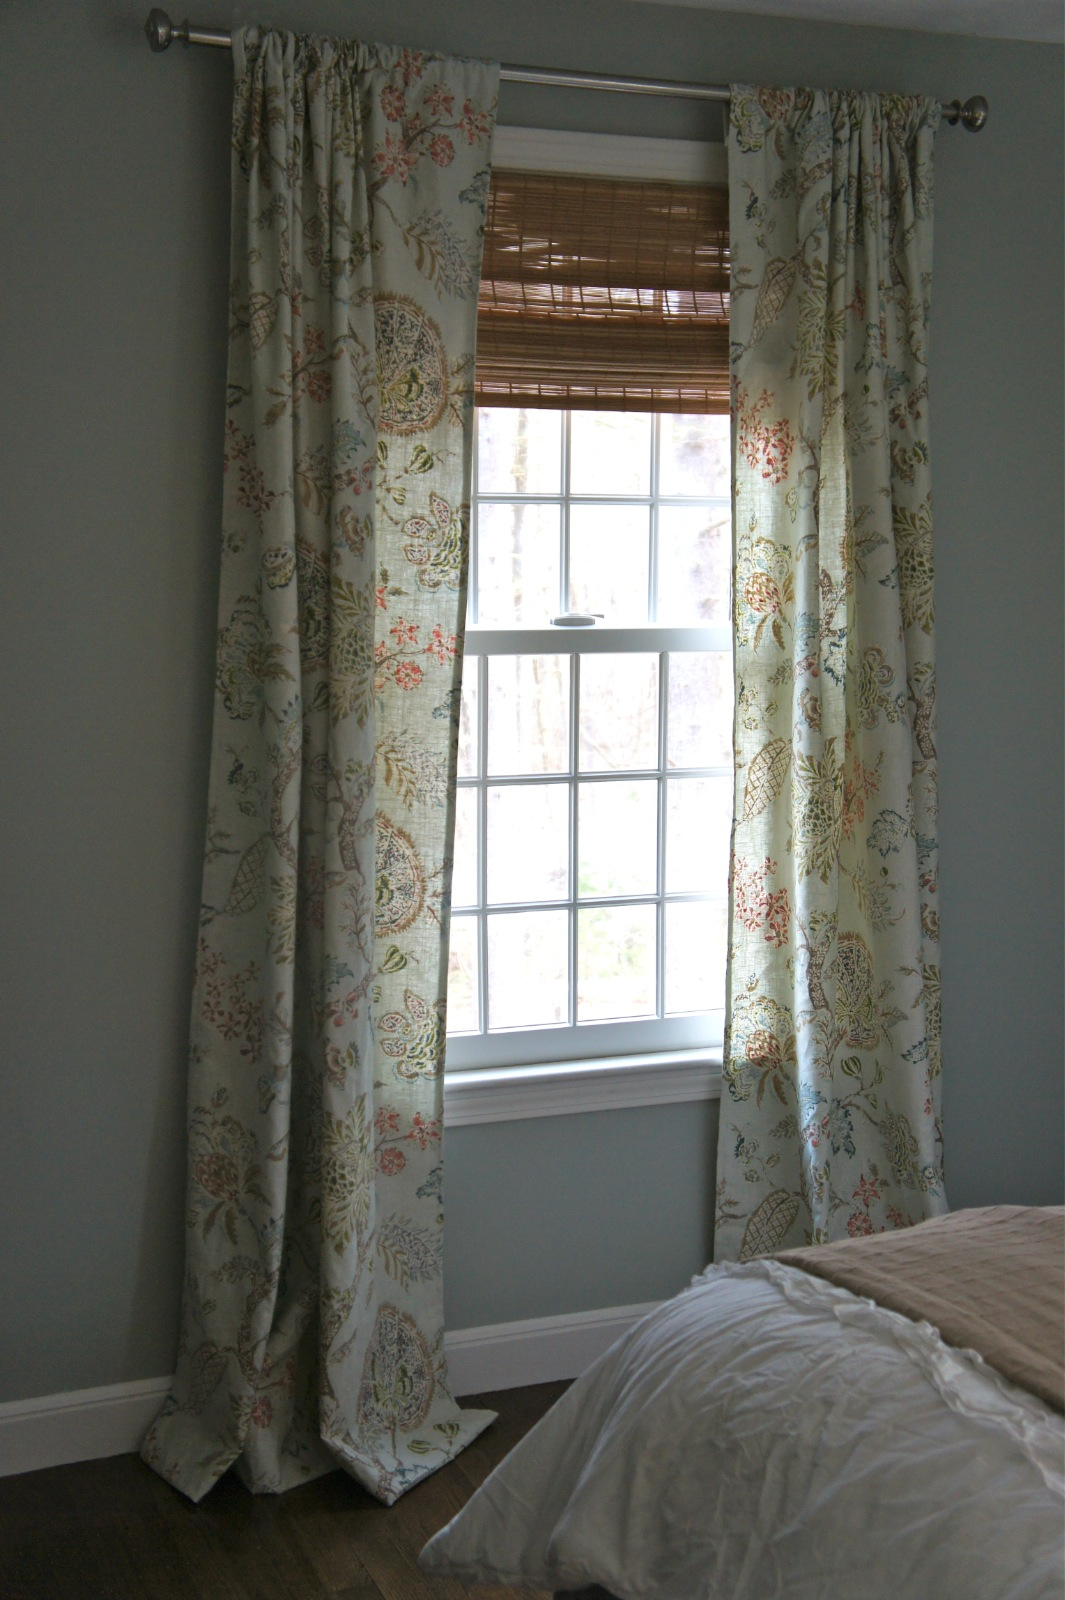 Silver Bedroom Curtains Sage Bedroom Curtains Free Image